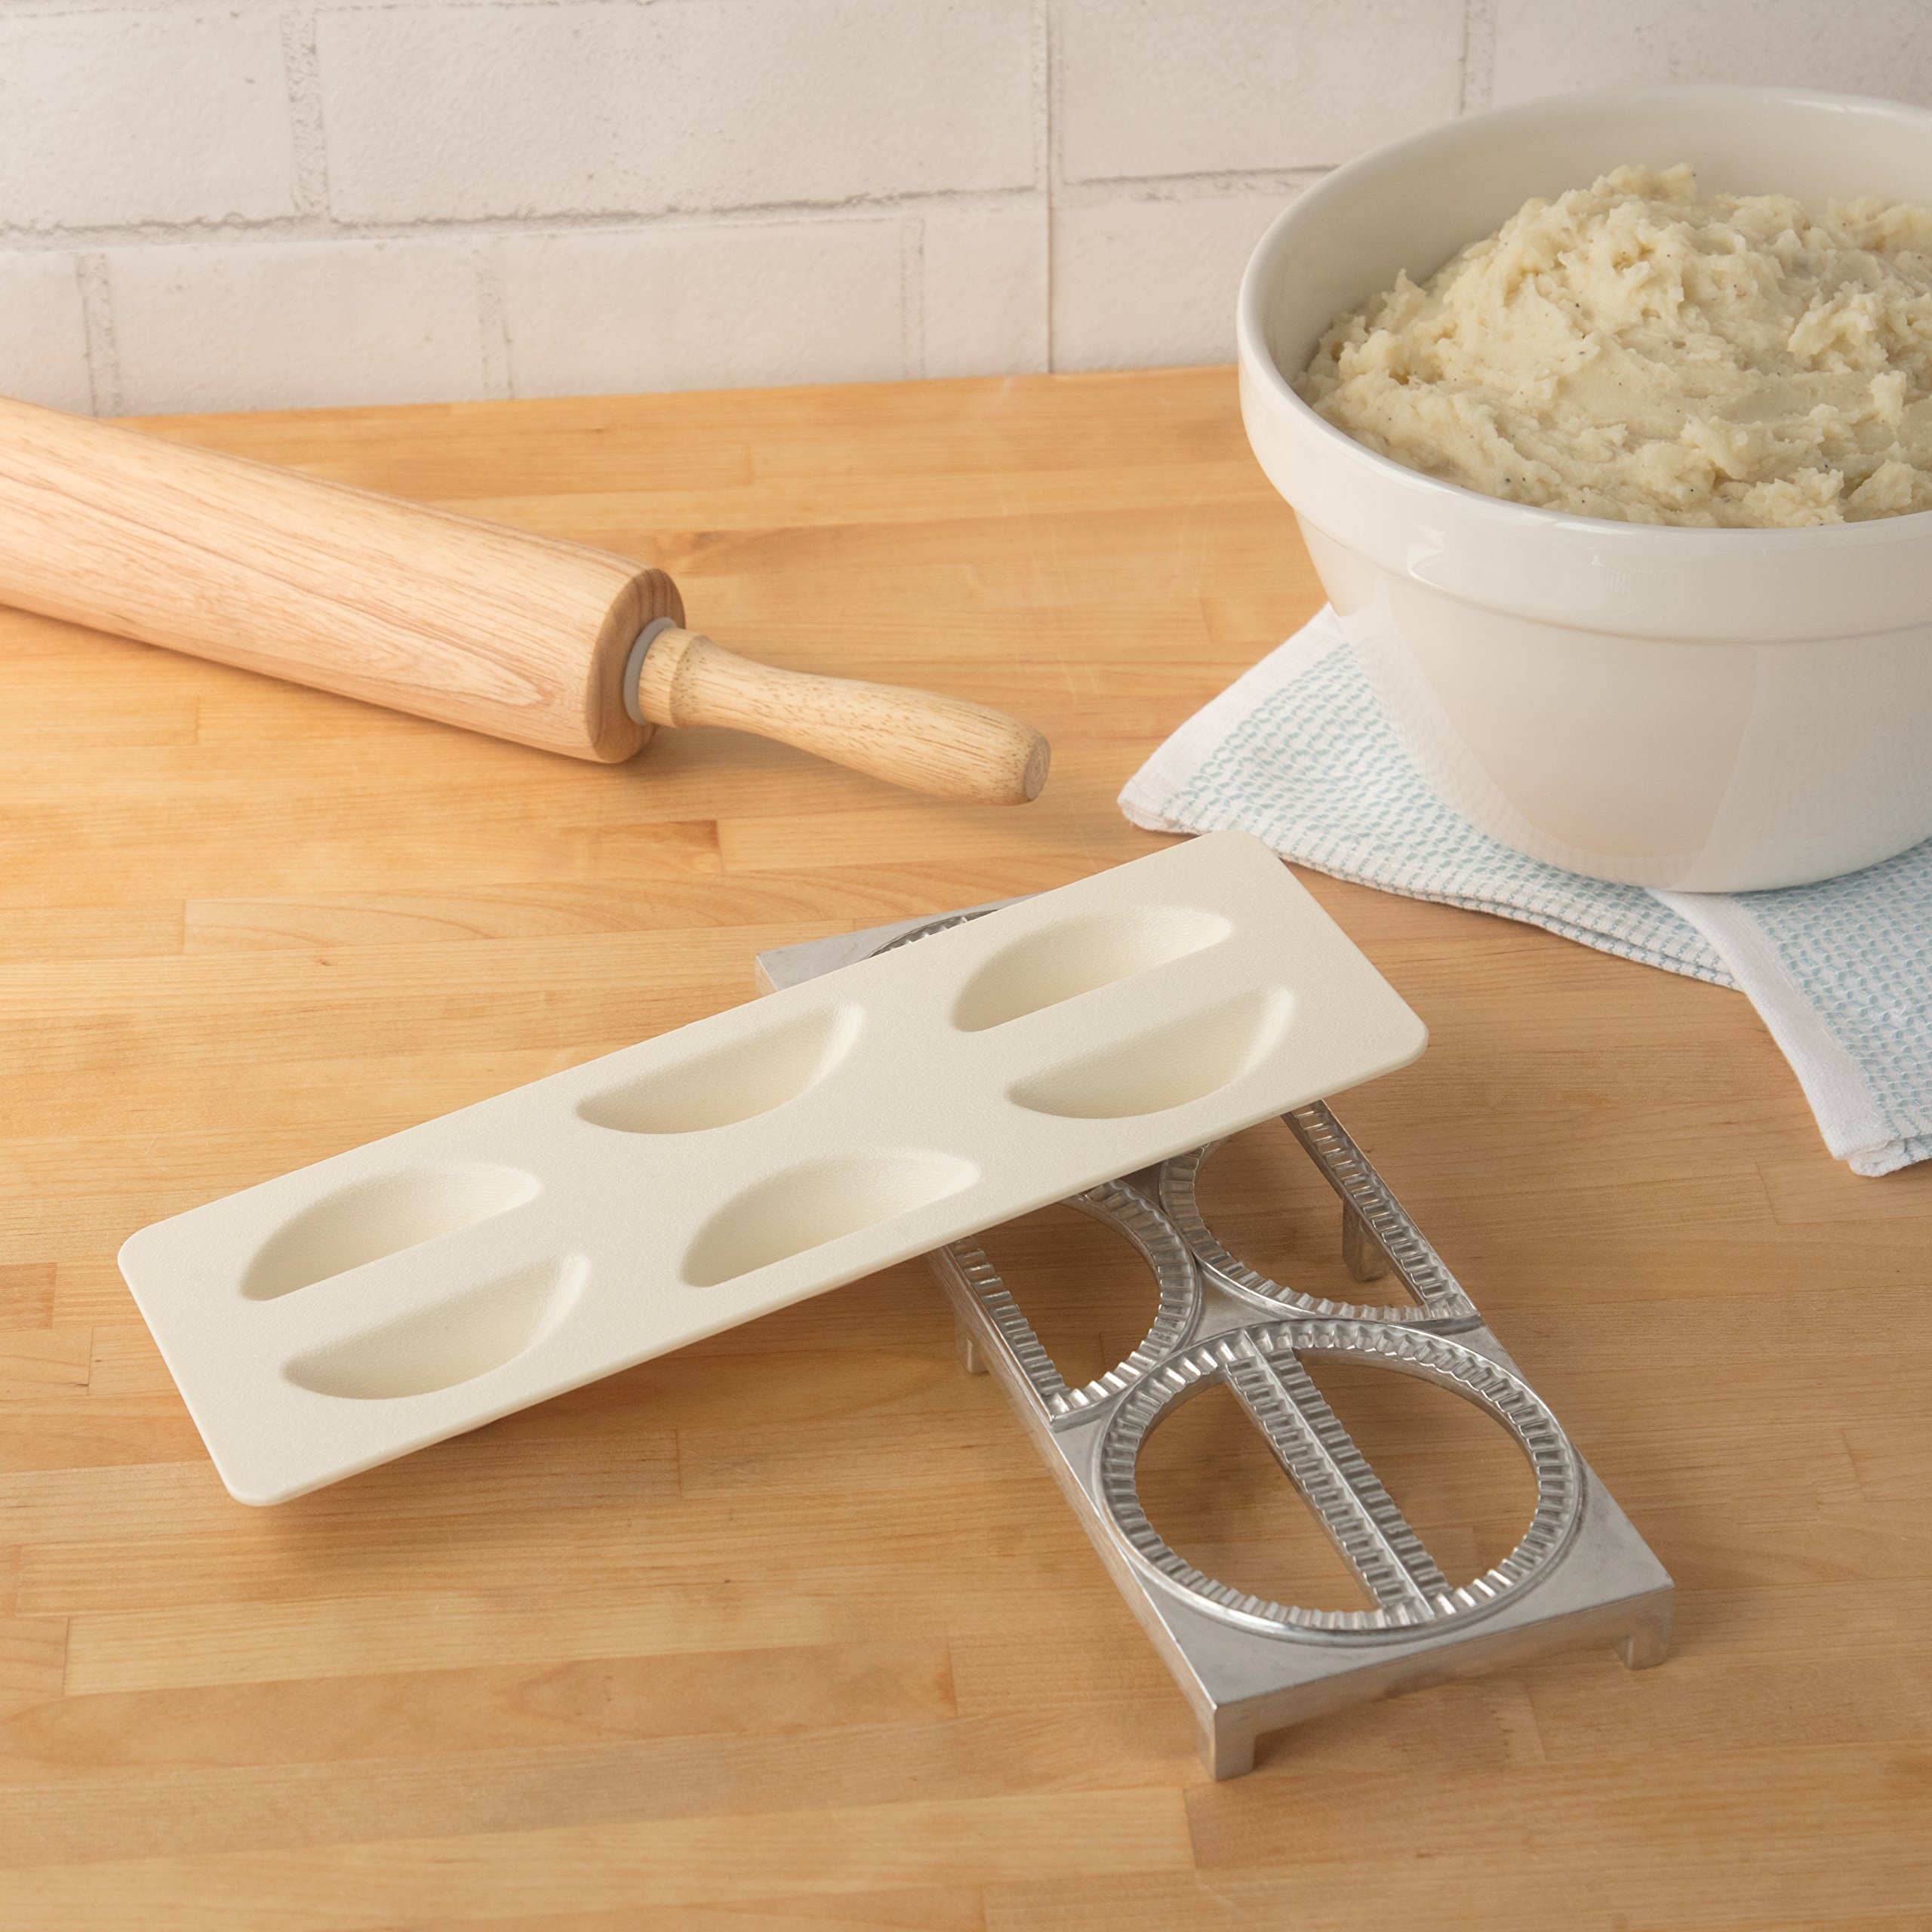 Pierogi Maker by Cucina Pro - Includes Tray and Press - Makes 6 Dumplings, Potstickers, or Peirogis at  a time by CucinaPro (Image #2)